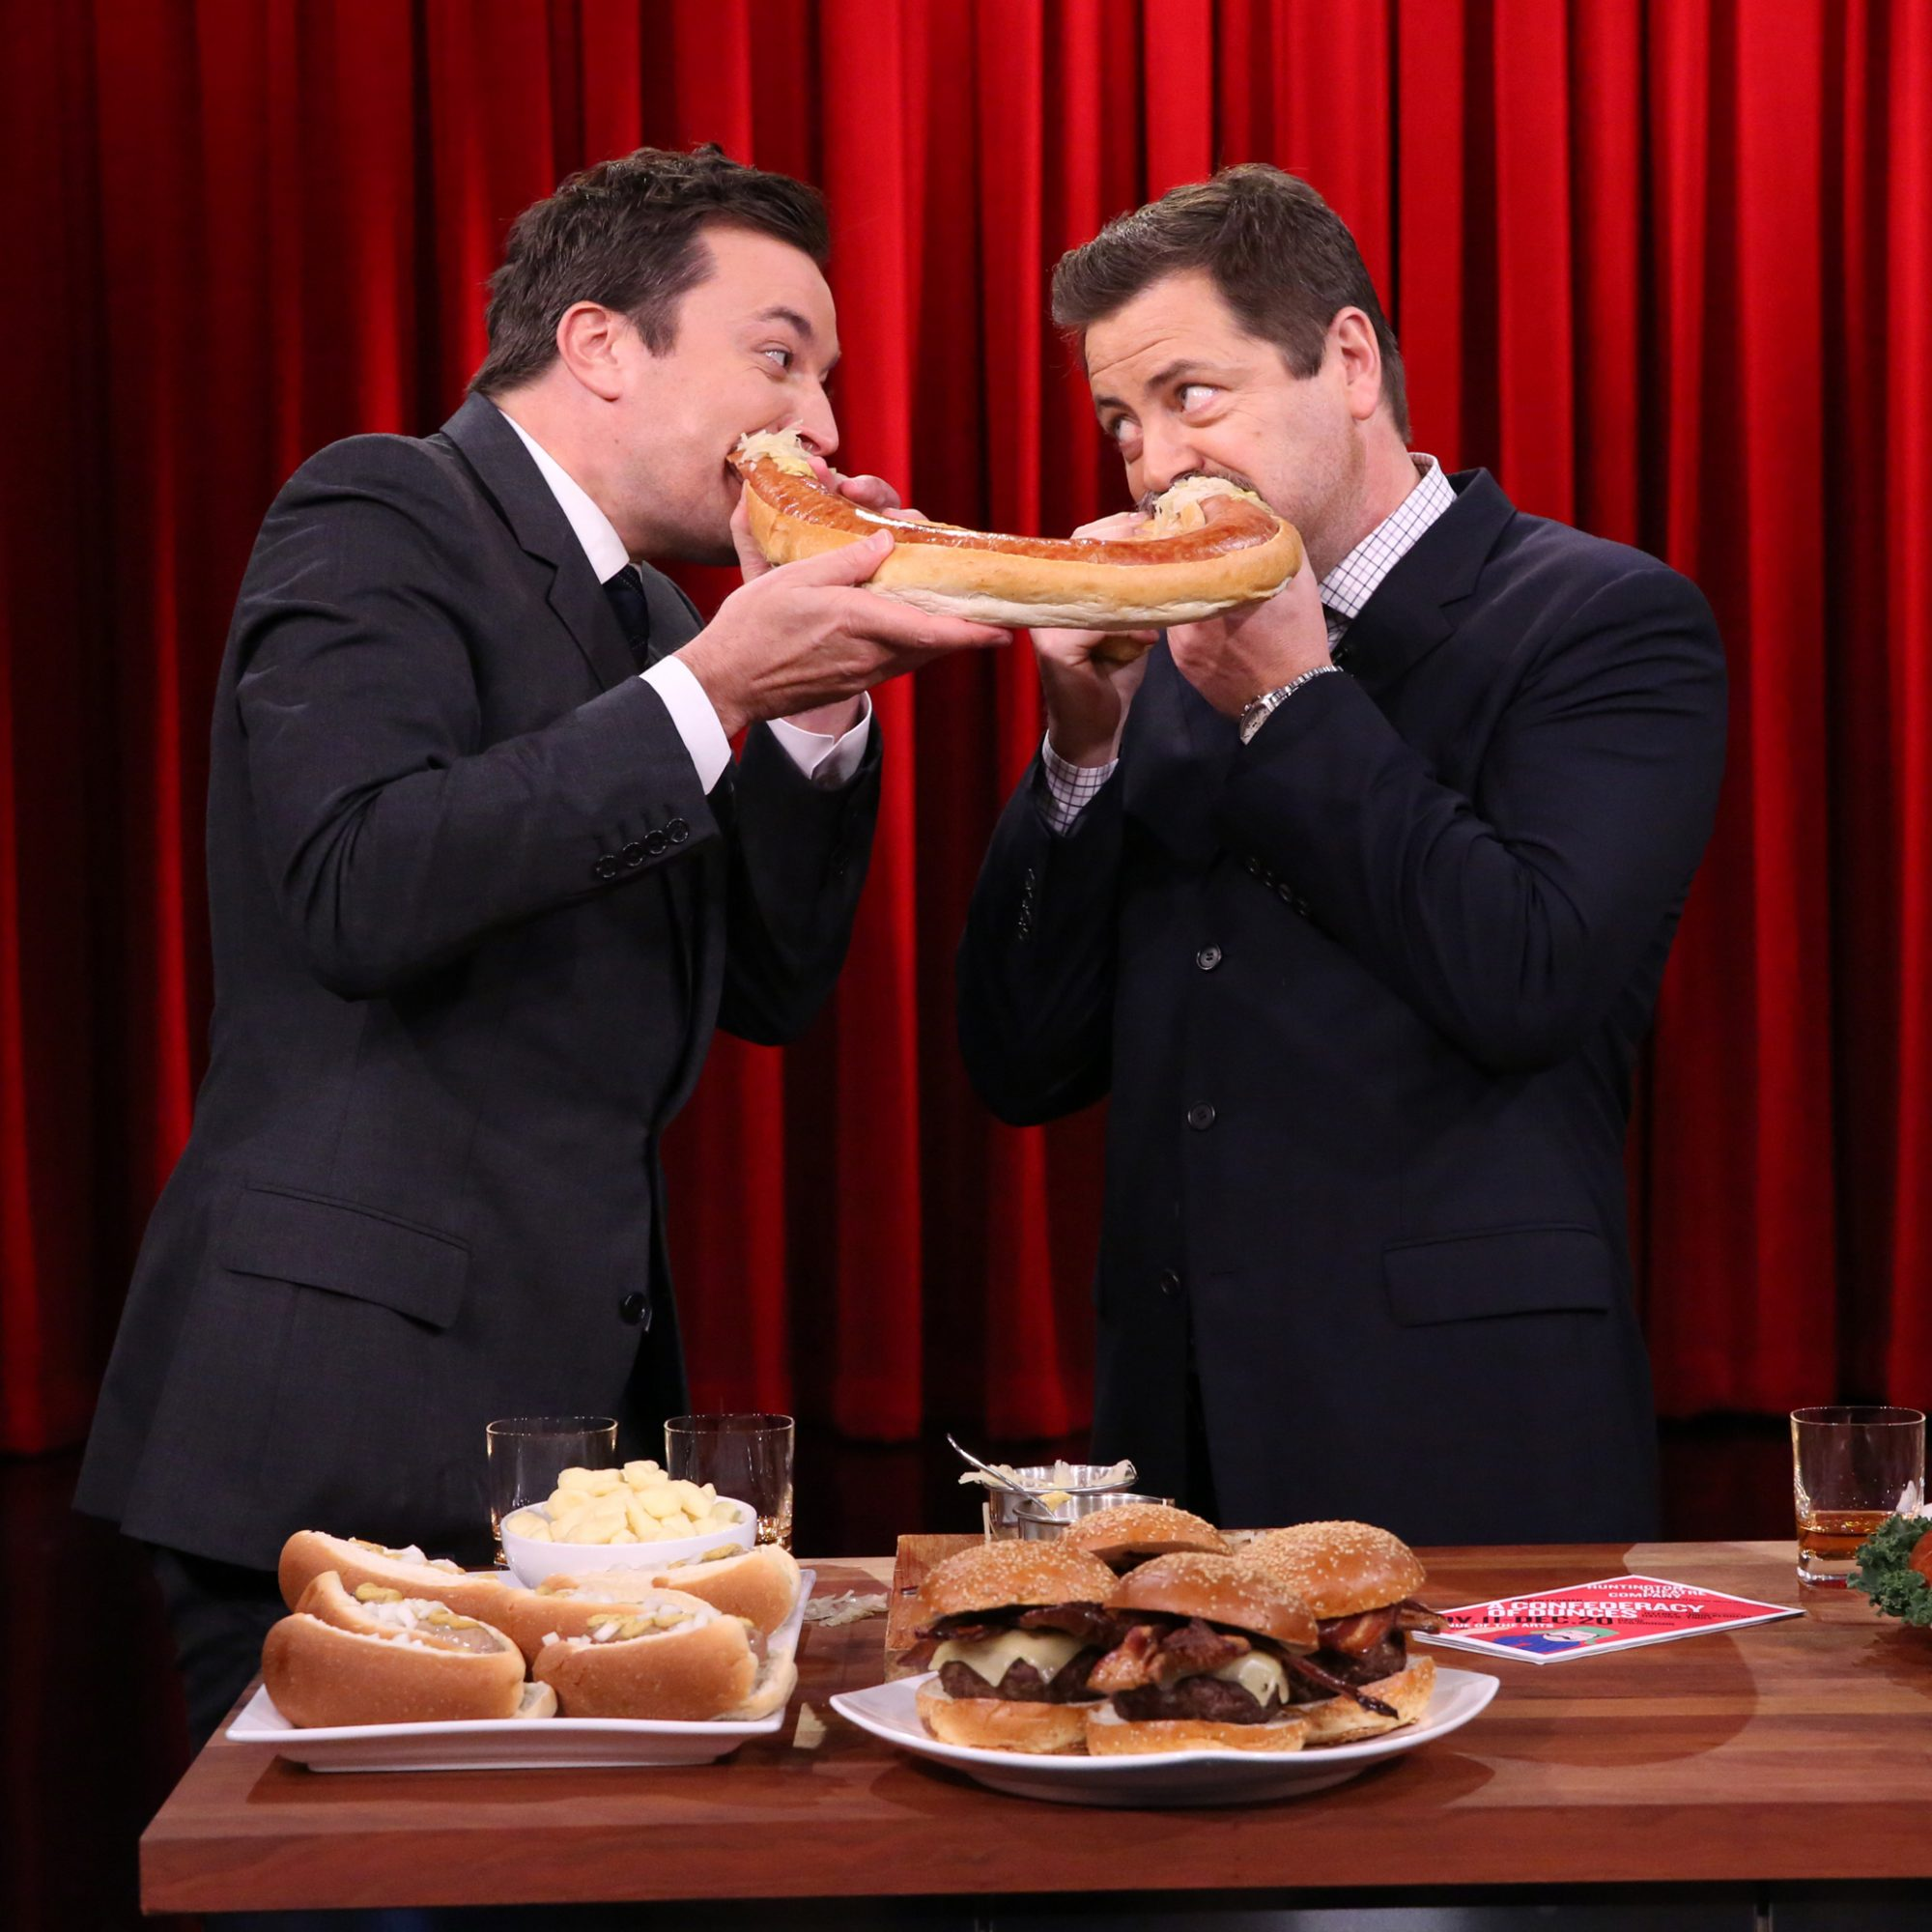 FWX NICK OFFERMAN SHARES HIS WEIGHT GAIN MEAT DIET